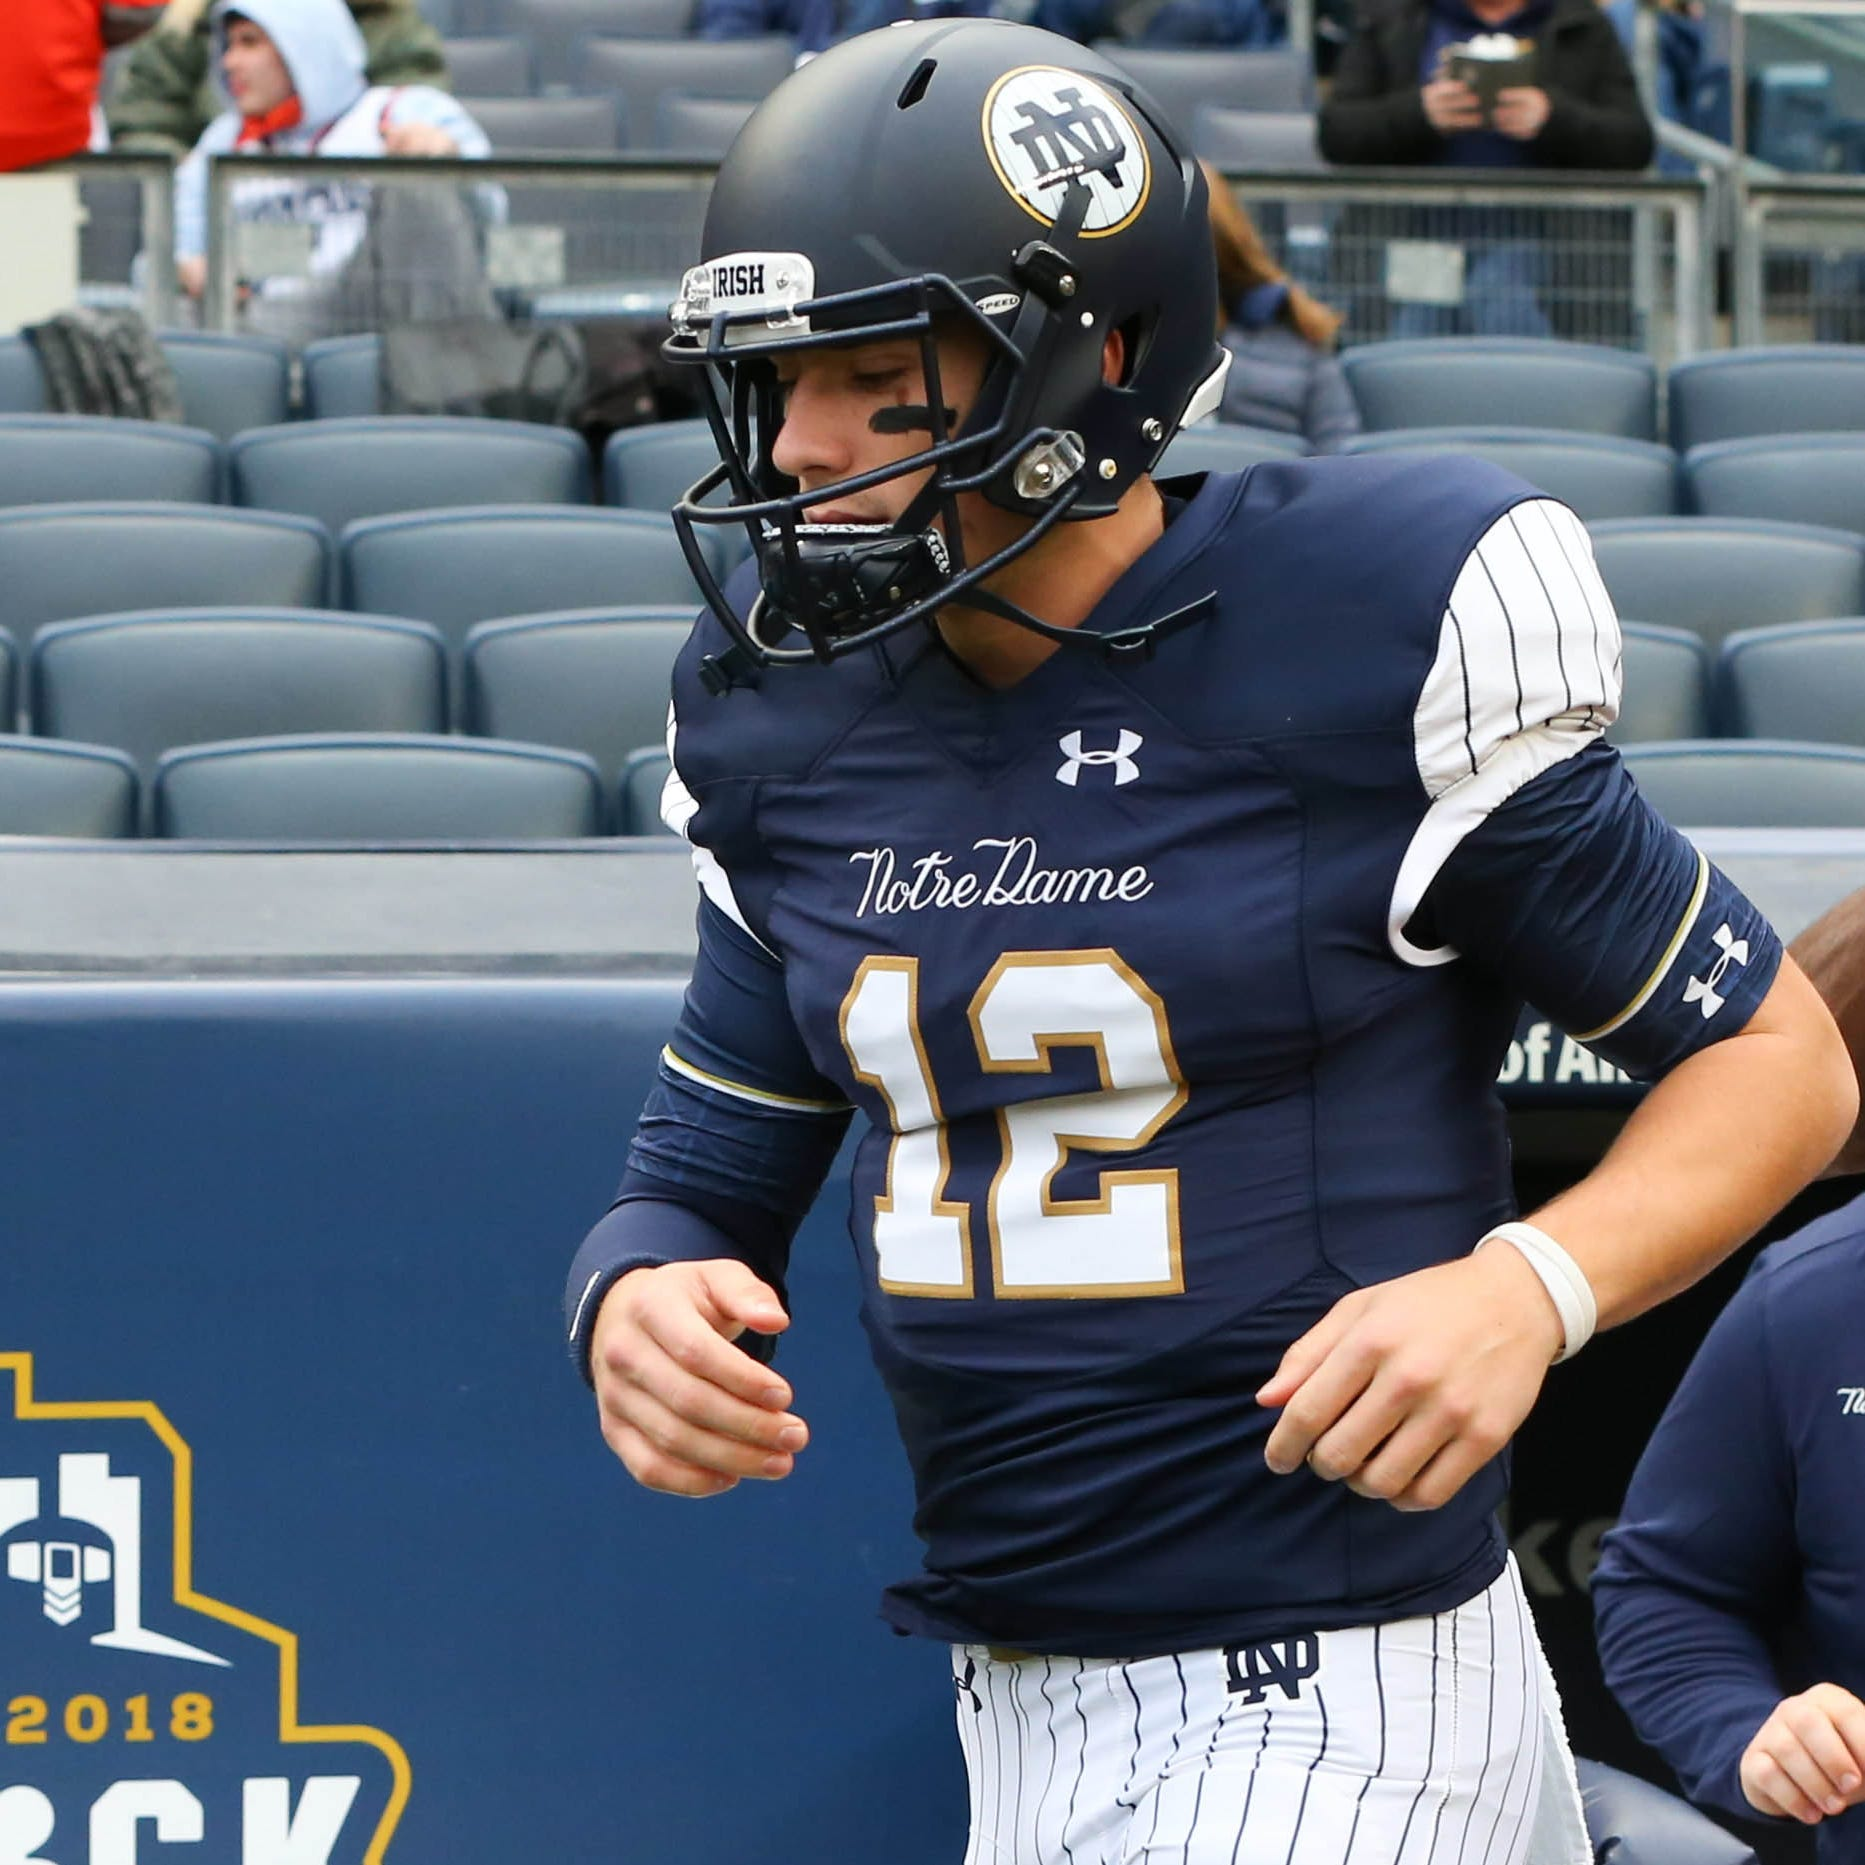 Notre Dame football's pinstripe uniforms vs. Syracuse are getting blasted